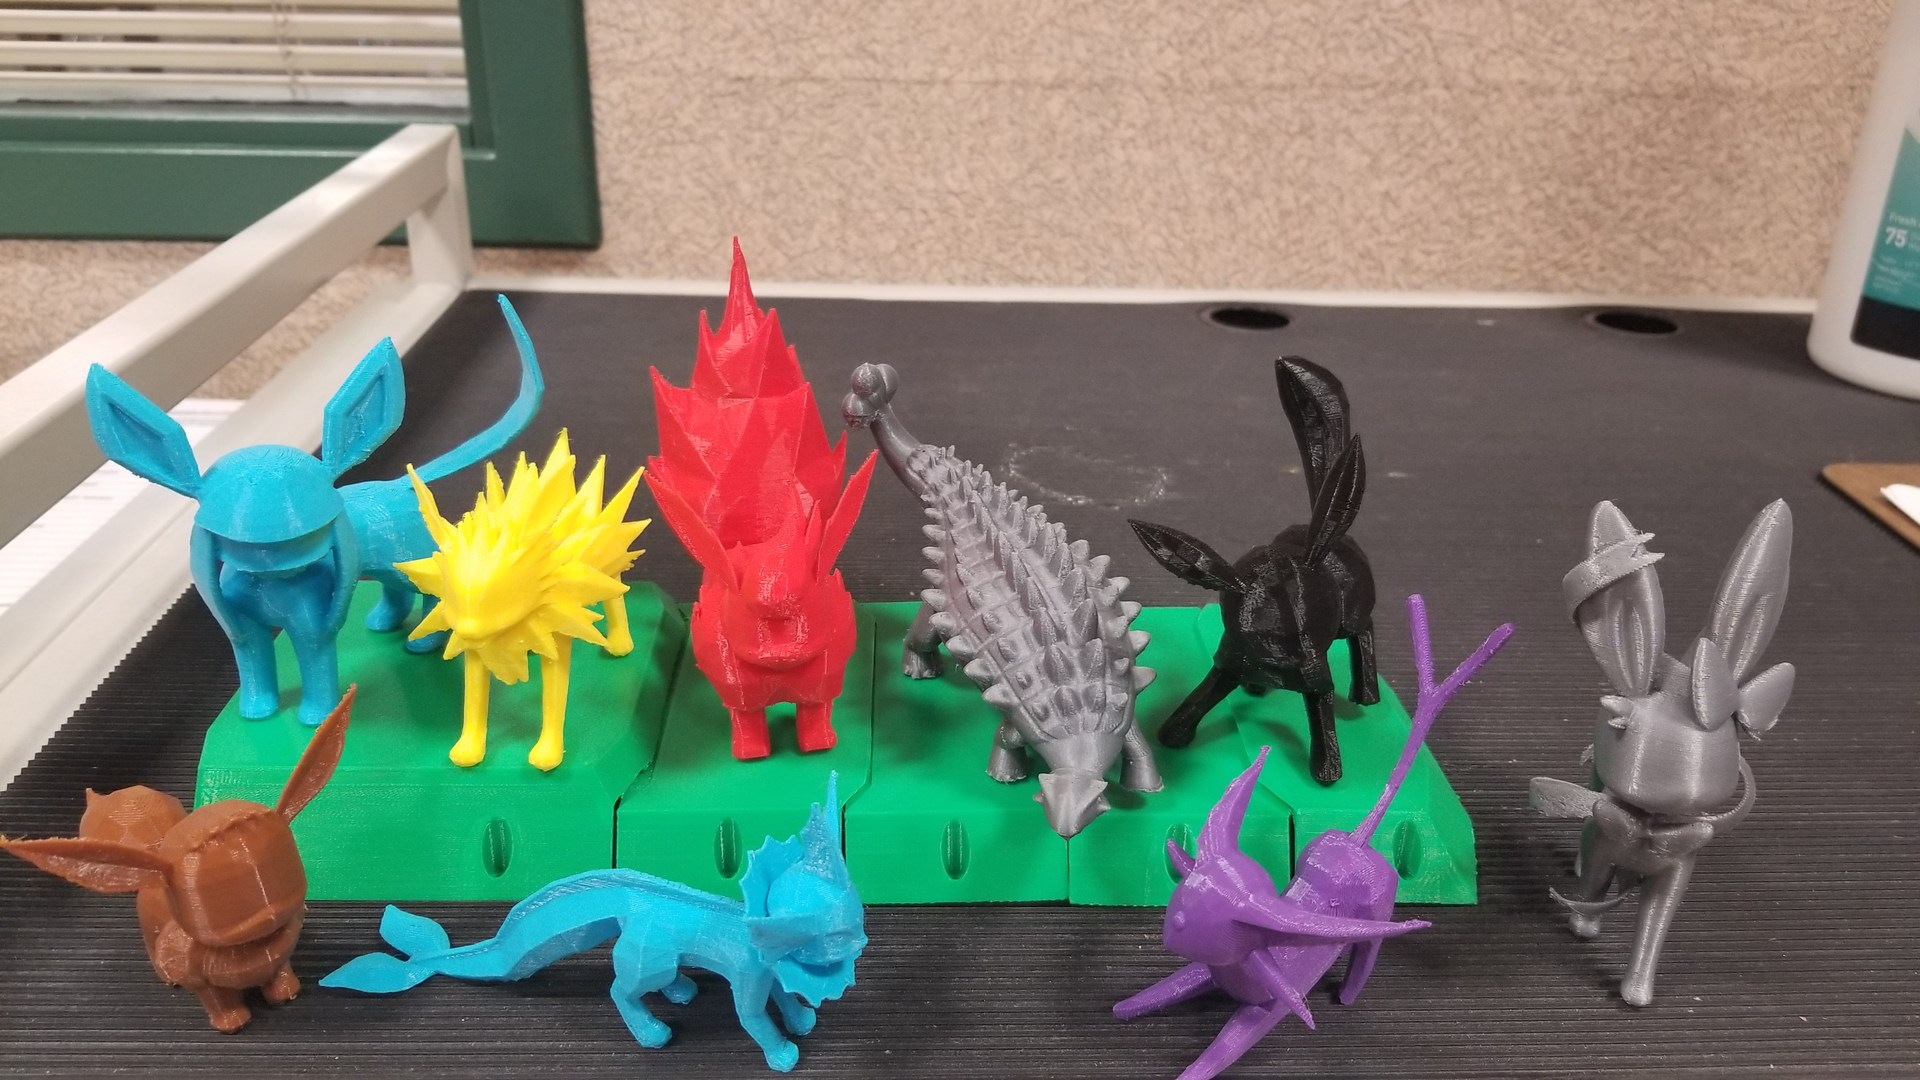 A 3D printed menagerie of creatures!